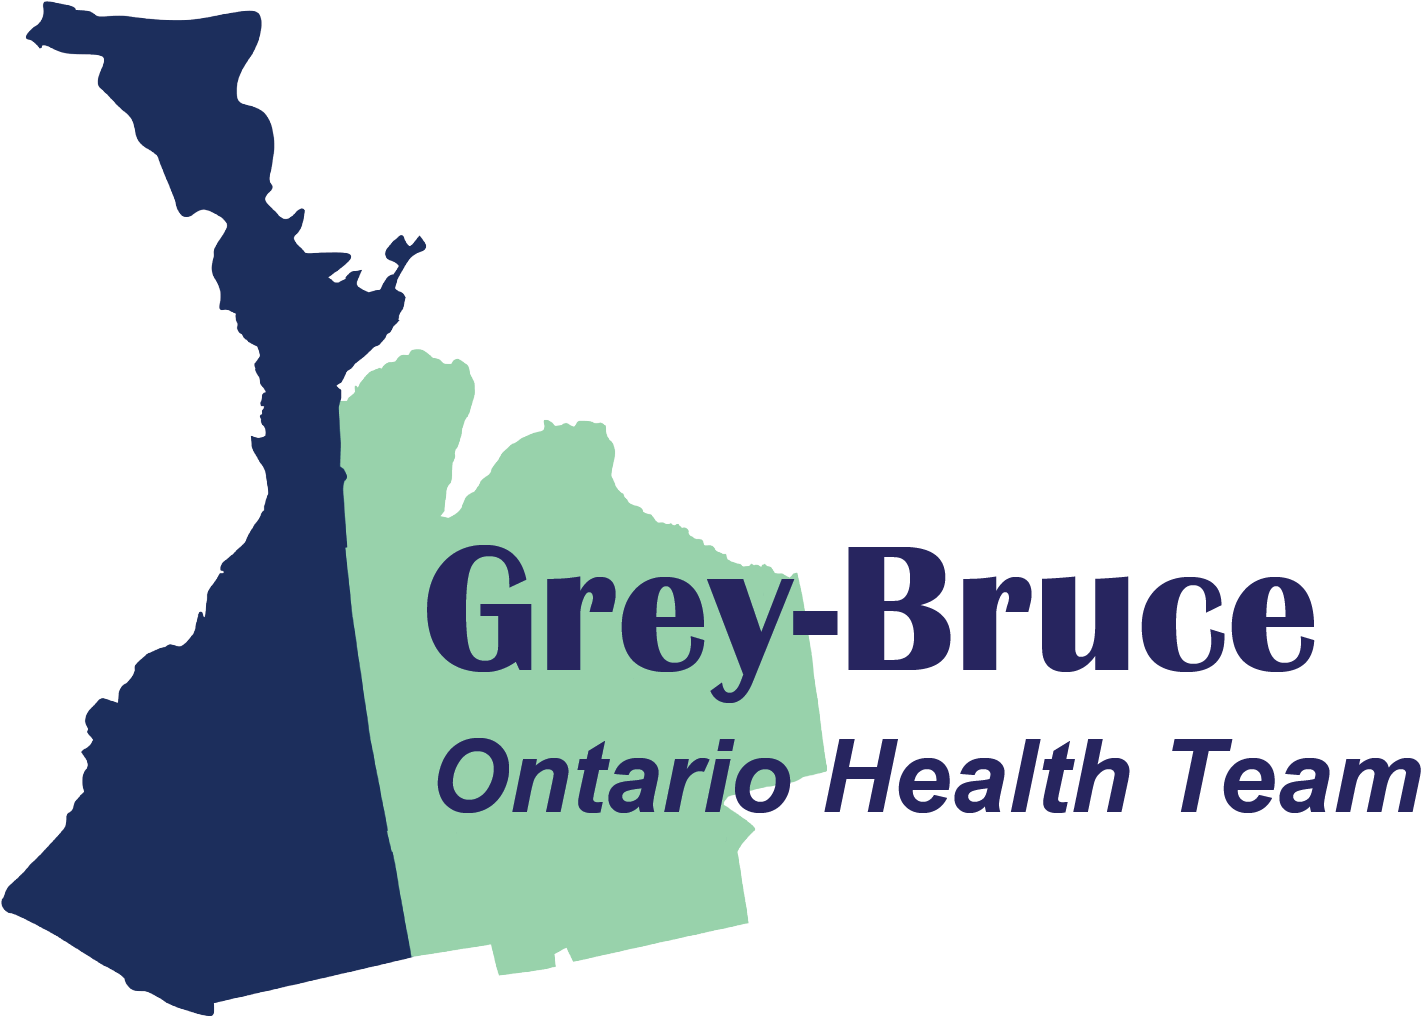 Grey-Bruce Ontario Health Team